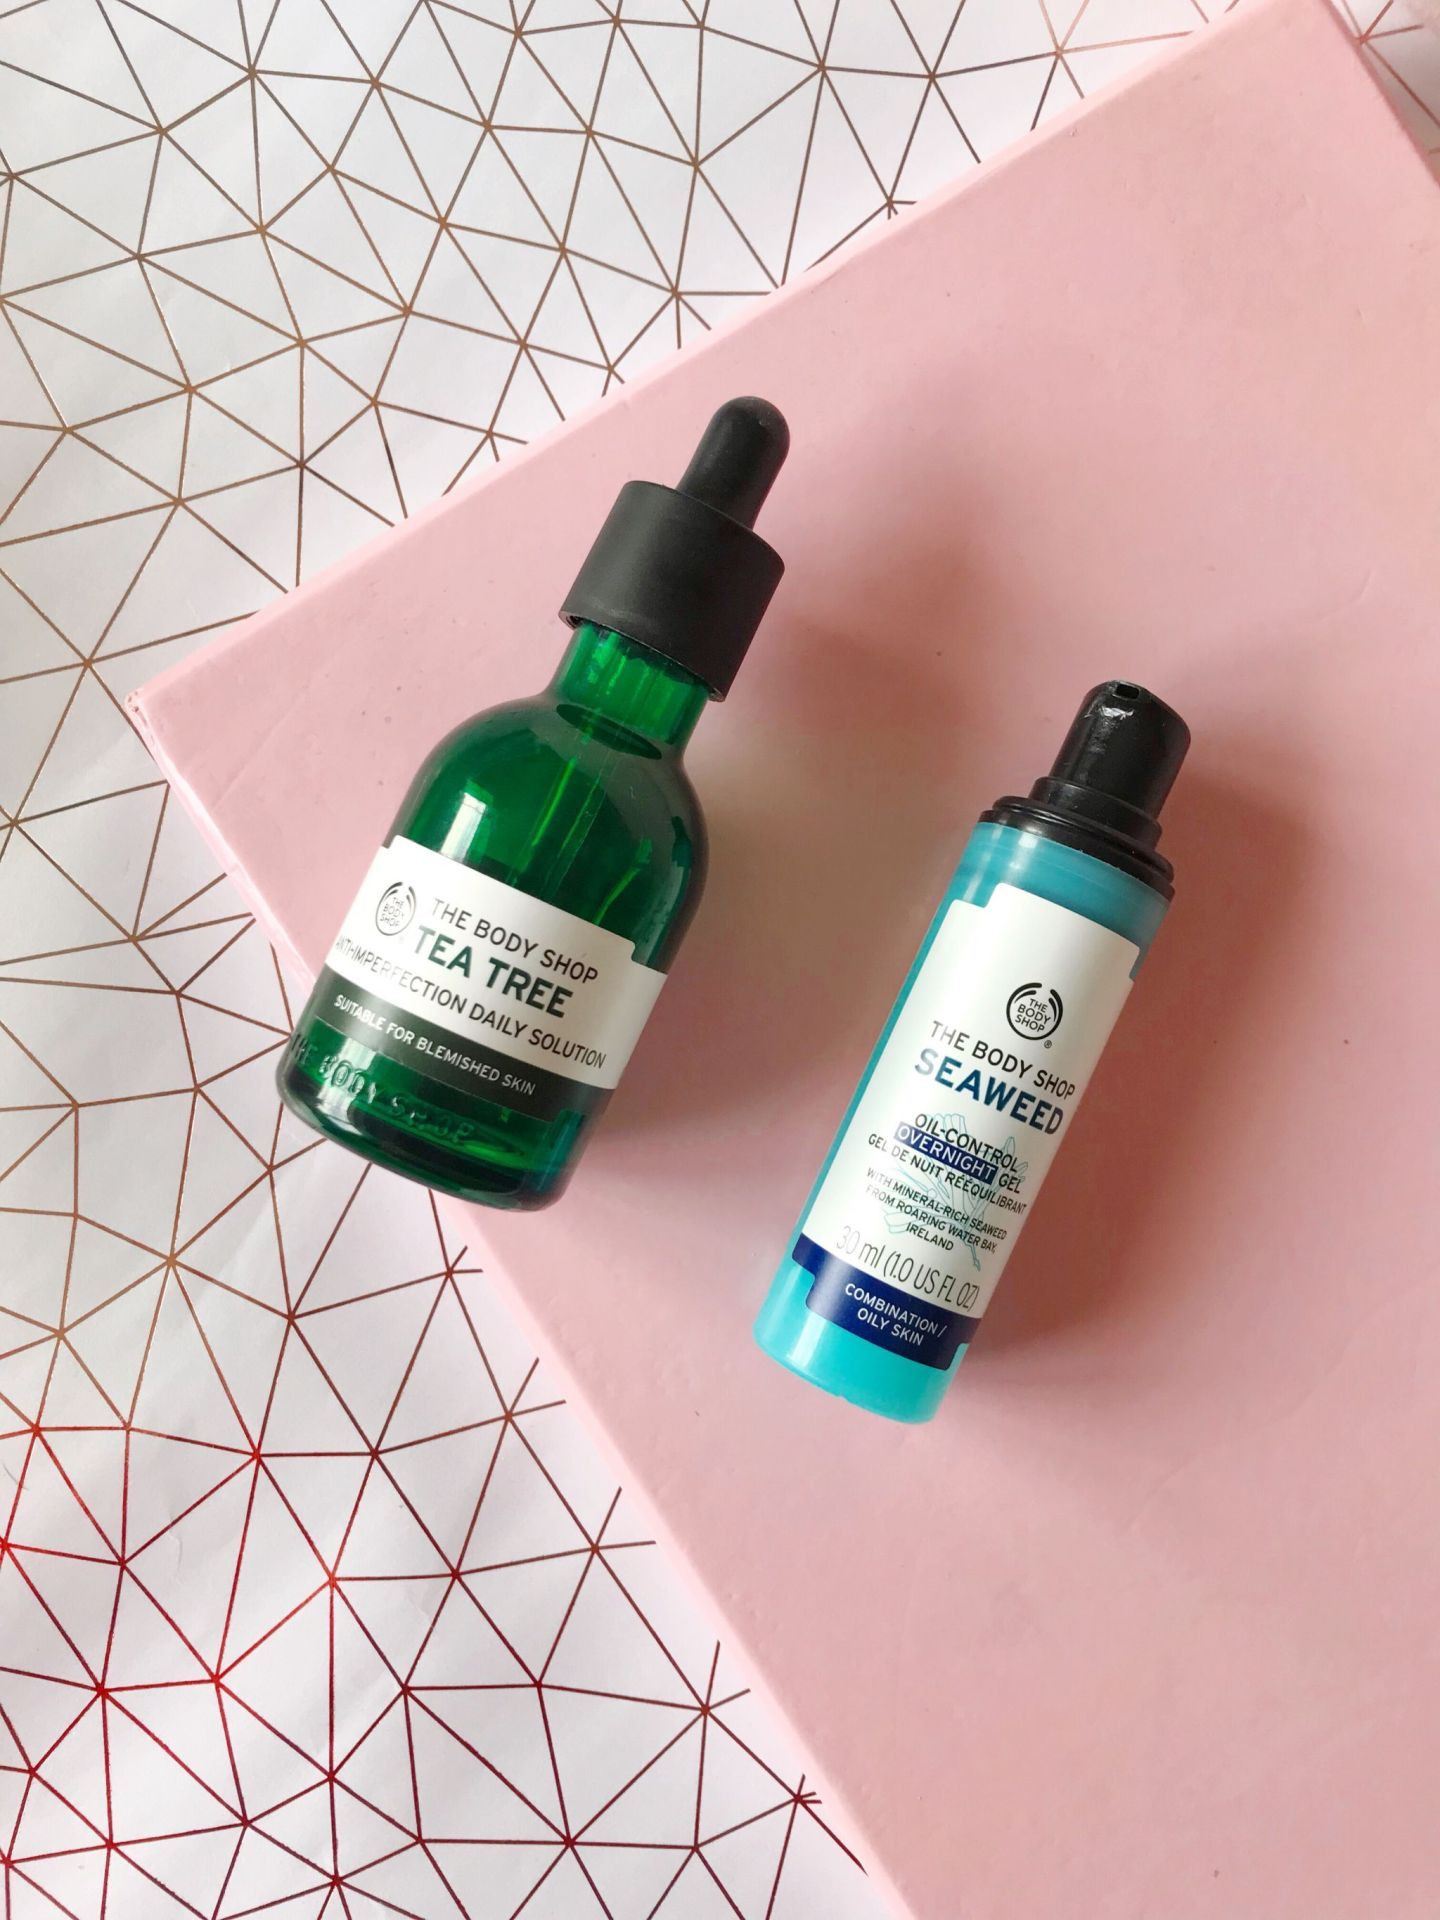 the body shop spot treatments and lotions - tea tree and seaweed range